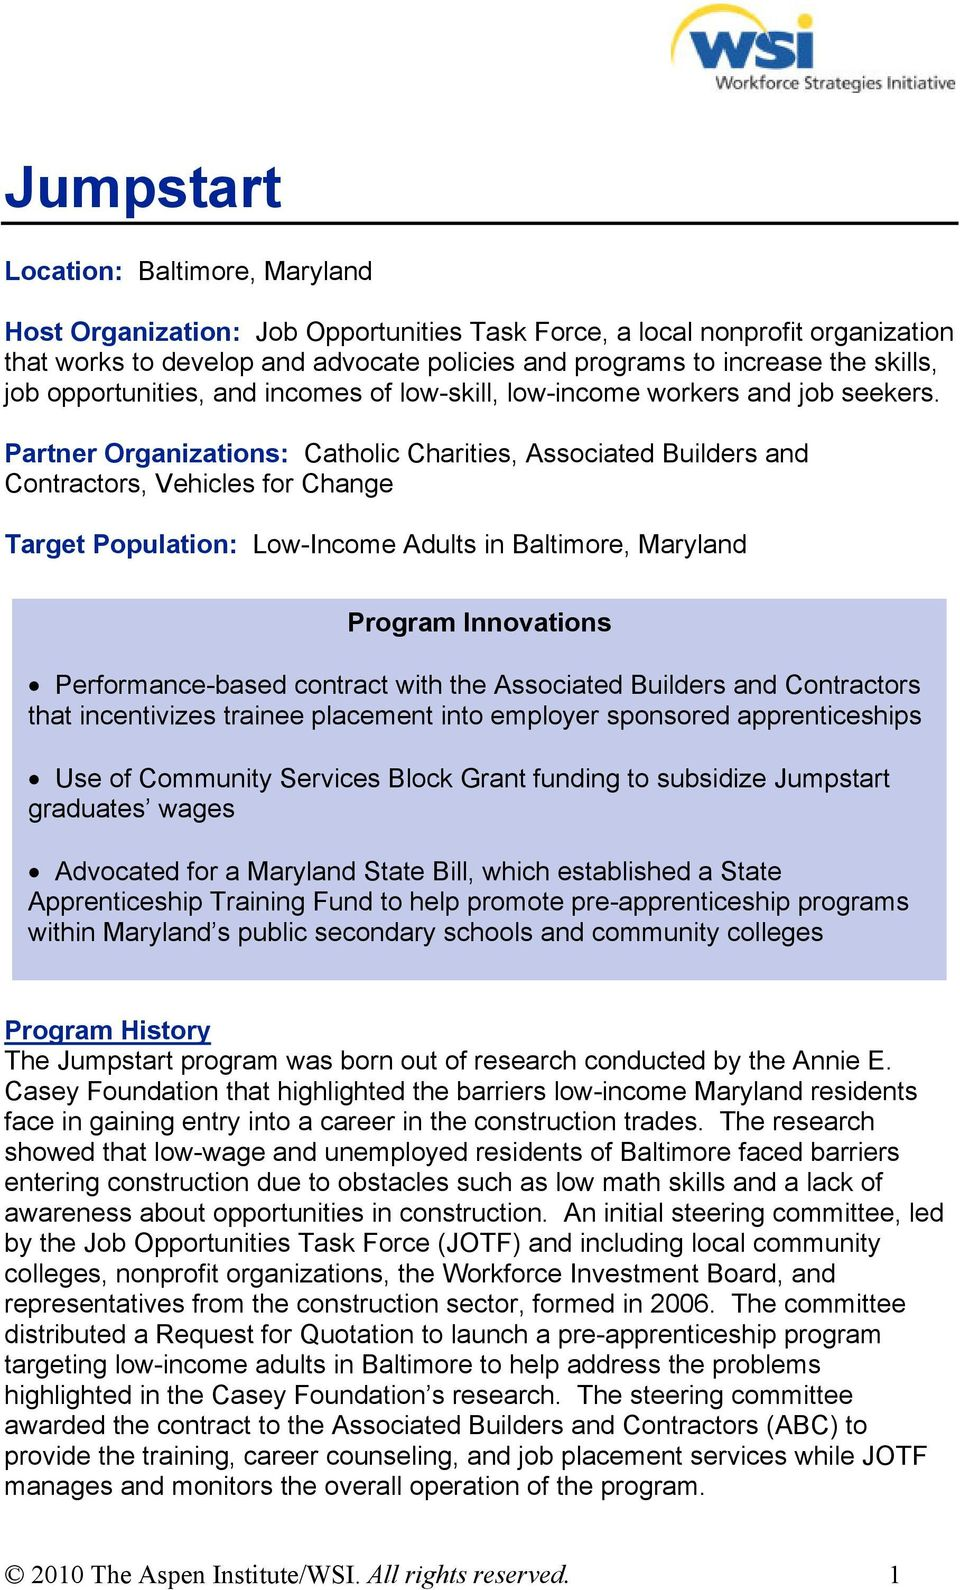 Partner Organizations: Catholic Charities, Associated Builders and Contractors, Vehicles for Change Target Population: Low-Income Adults in Baltimore, Maryland Program Innovations Performance-based